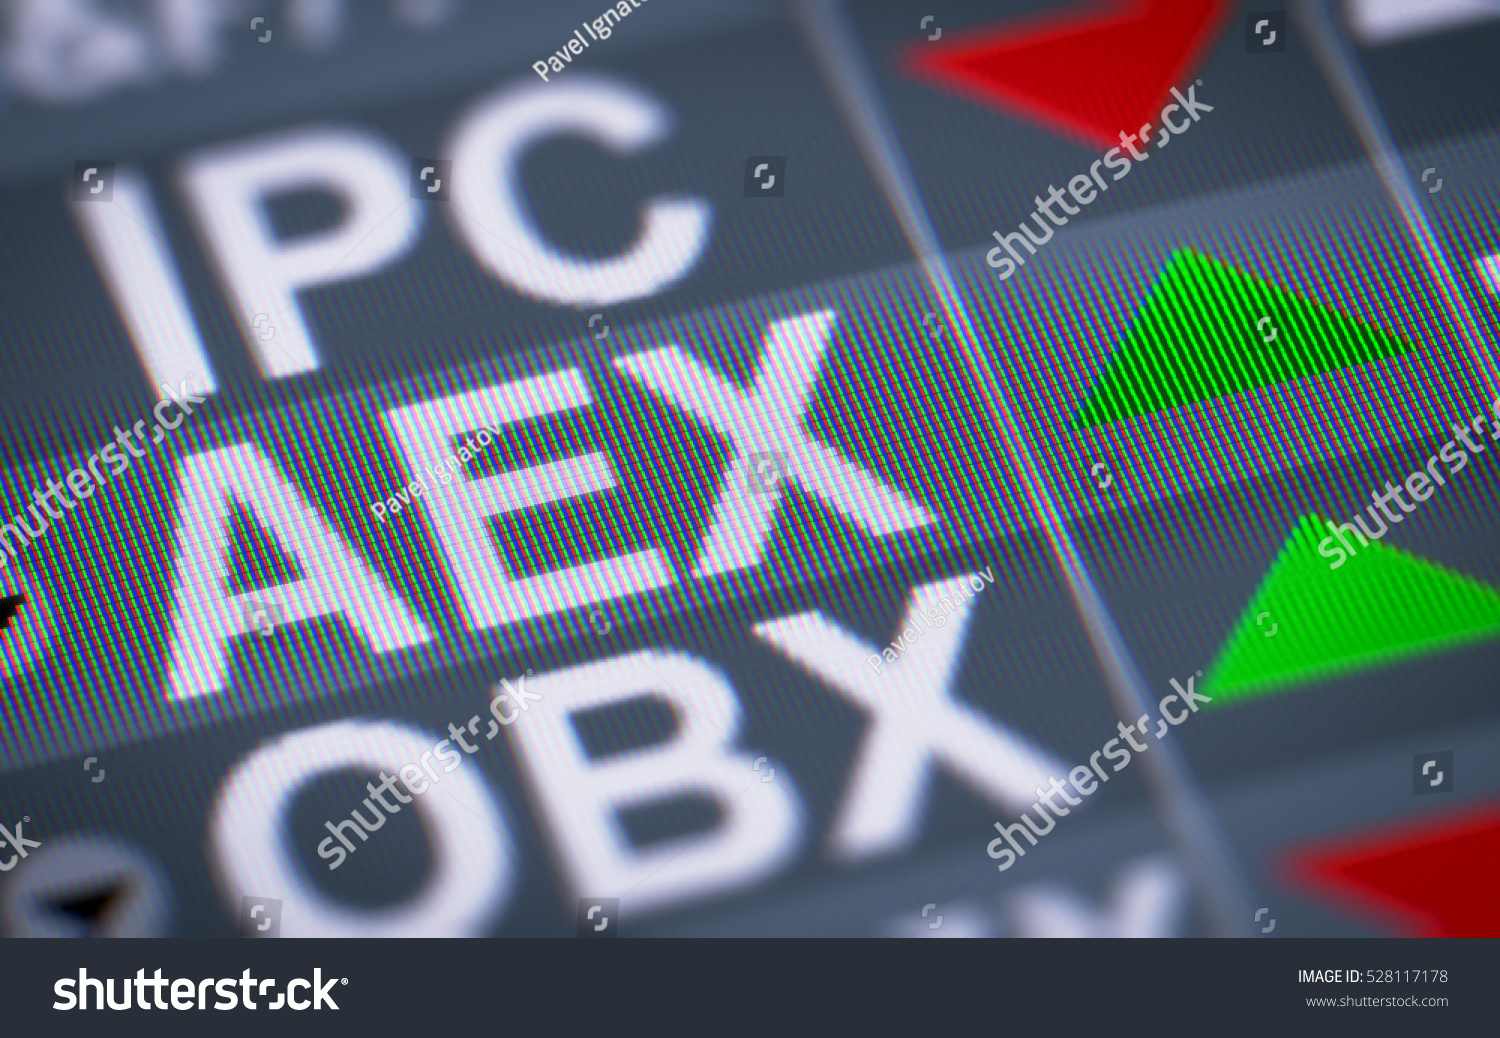 Amsterdam exchange index stock market index stock illustration the amsterdam exchange index is a stock market index composed of dutch companies that trade on biocorpaavc Gallery